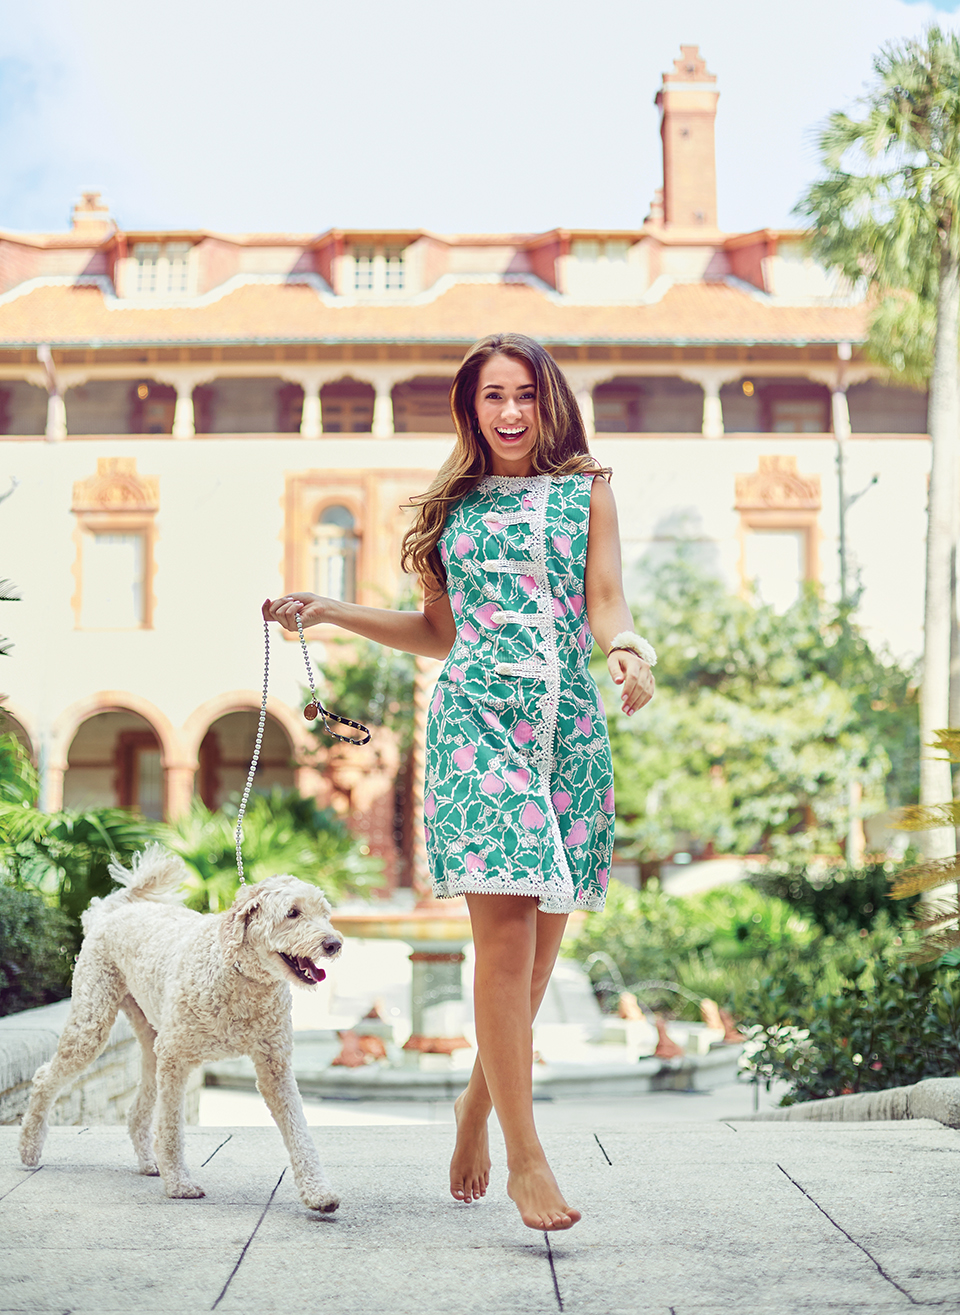 Floridian Eve Gay wears a vintage Lilly Pulitzer shift while playing with her labradoodle Jobi at Flagler College's historic Ponce de León Hall, in St. Augustine. Photography by Mary Beth Koeth